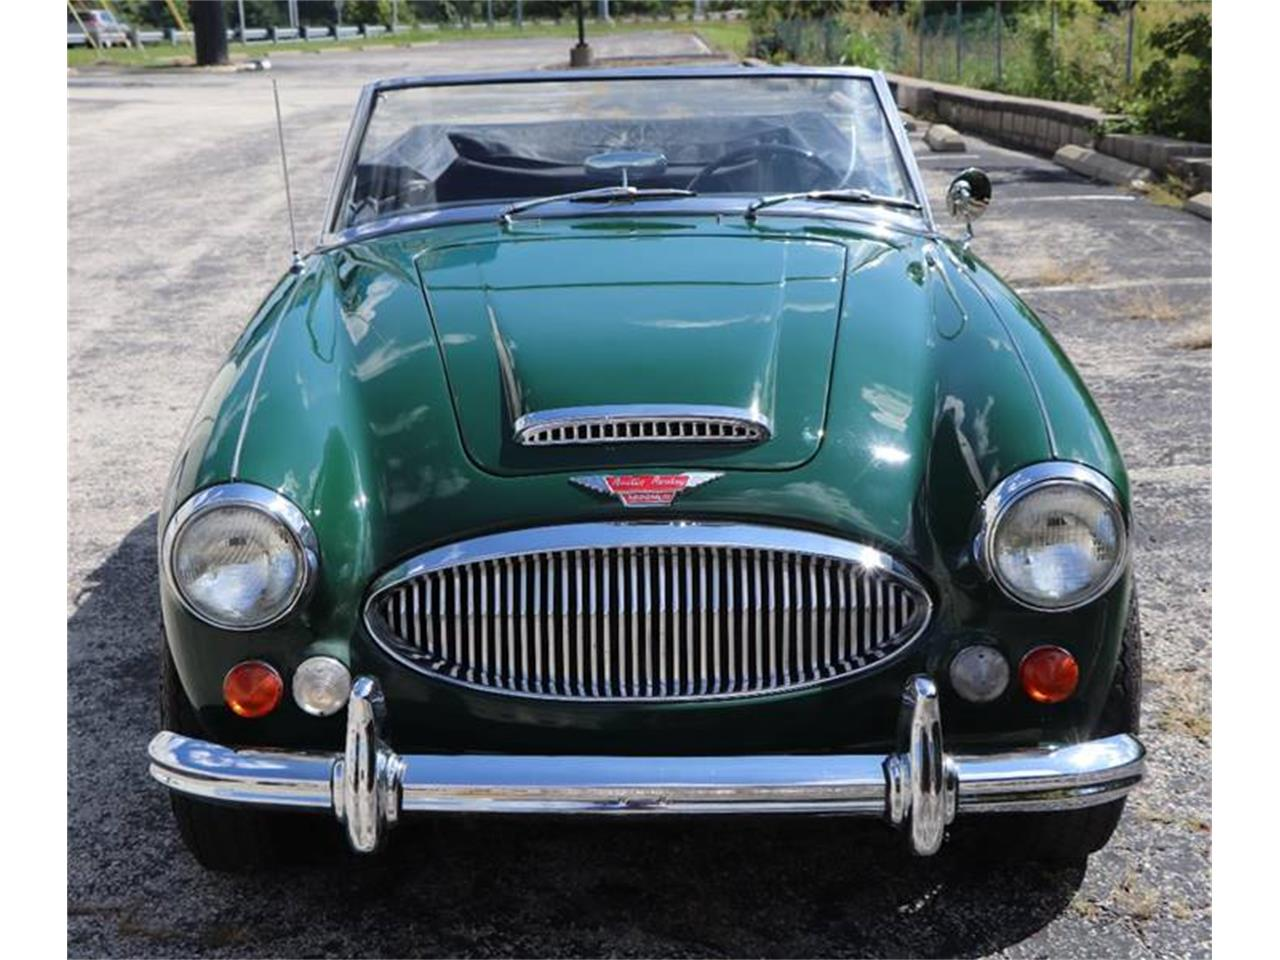 1967 Austin-Healey 3000 Mark III BJ8 for sale in St Louis, MO – photo 3